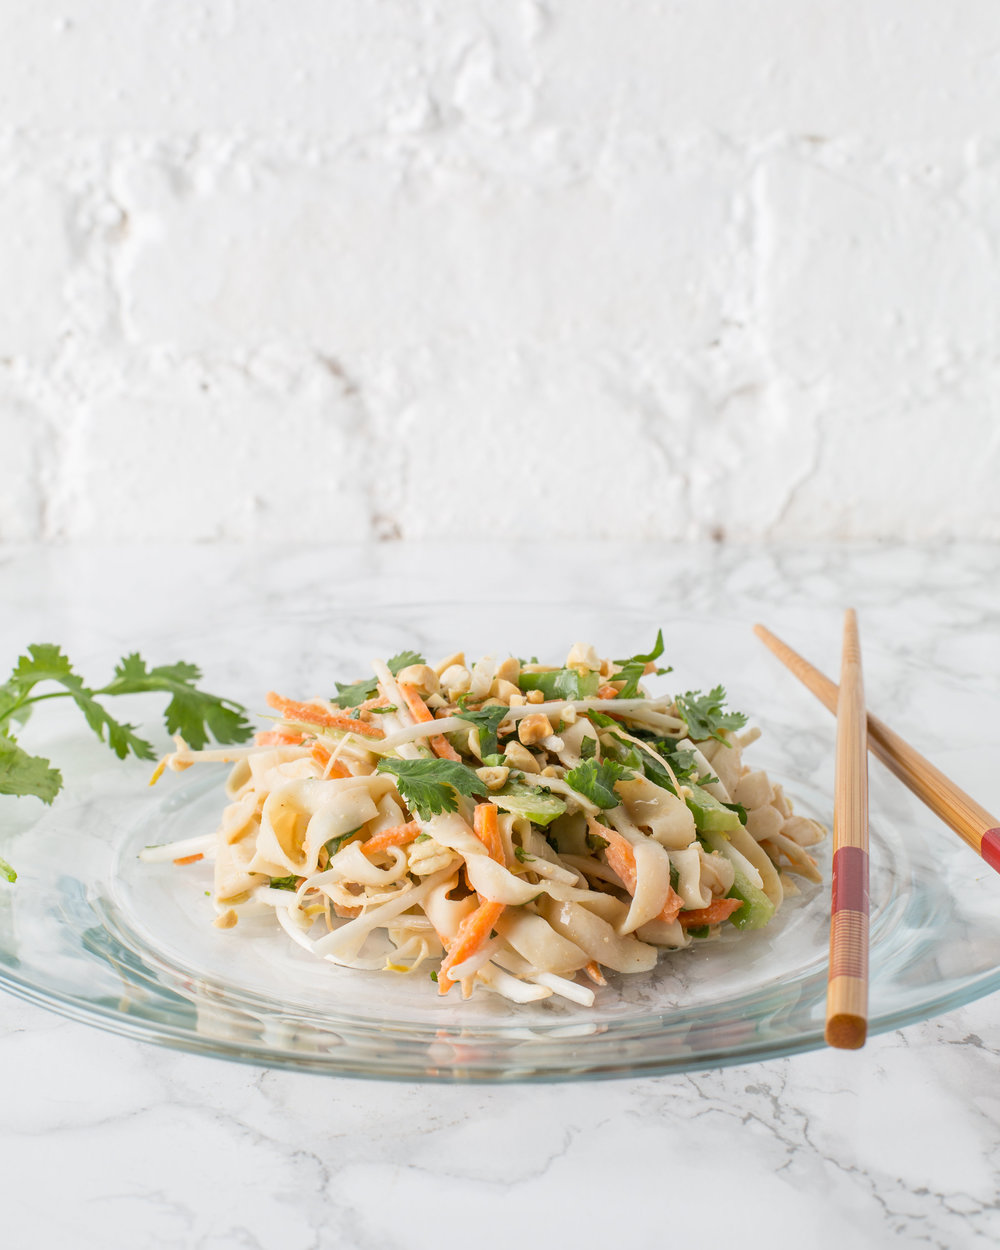 Pad Thai Salad. Photo by Sarah Crowder.